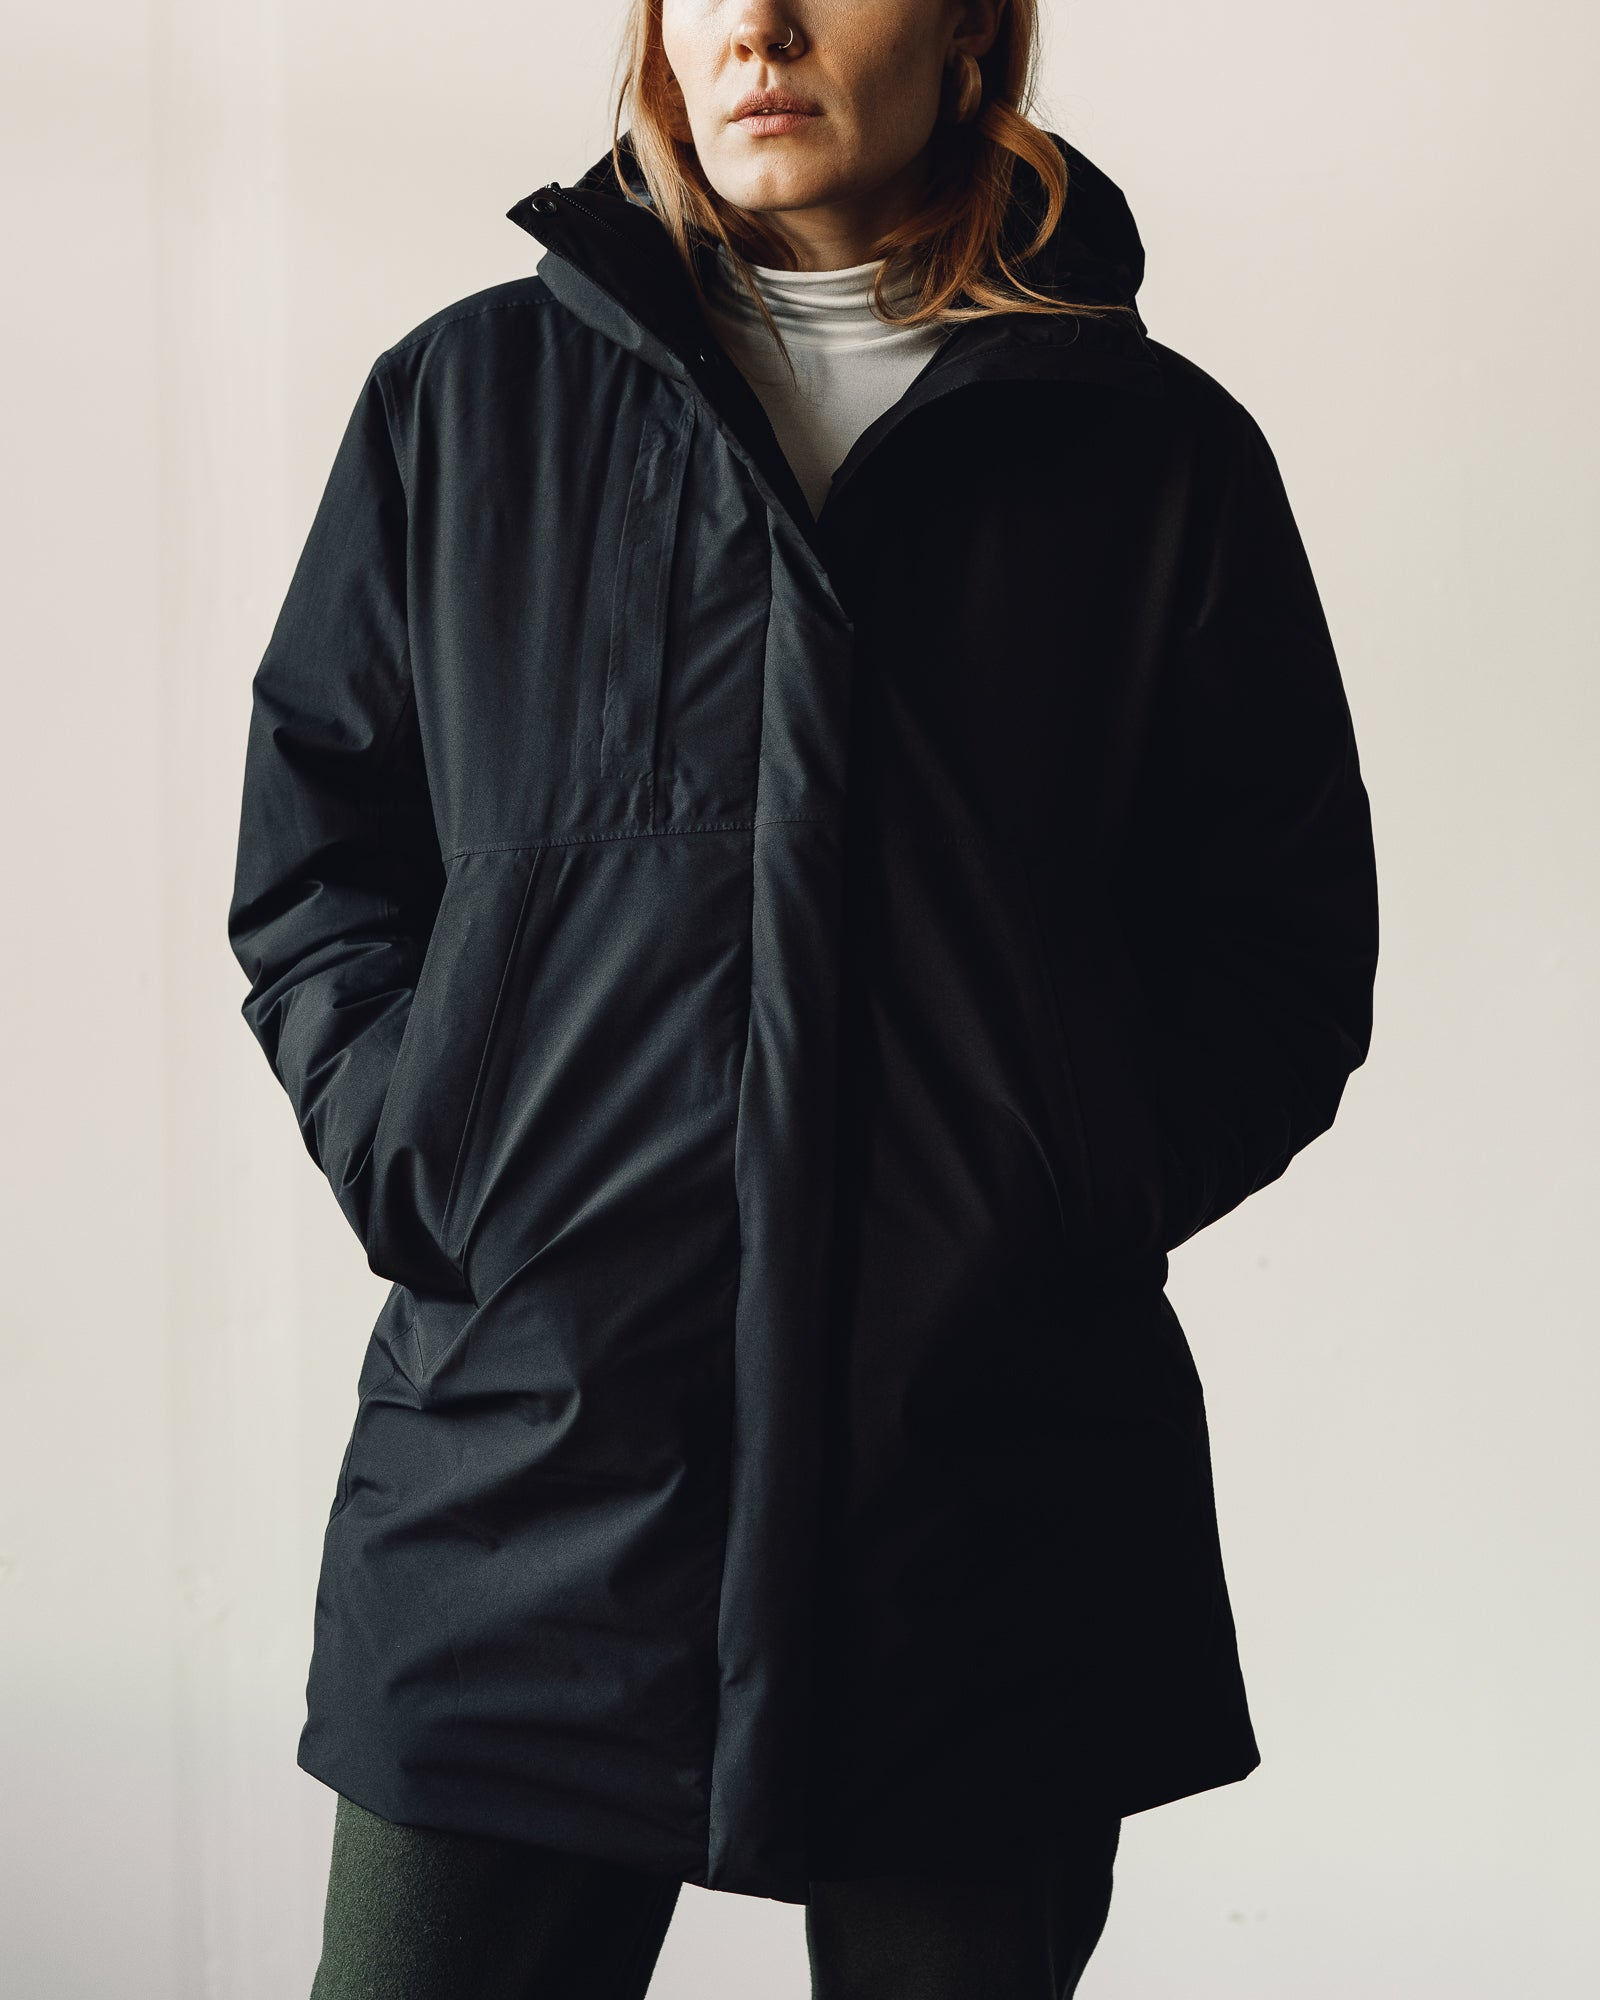 Norse Projects Oda GORE-TEX Jacket, Black